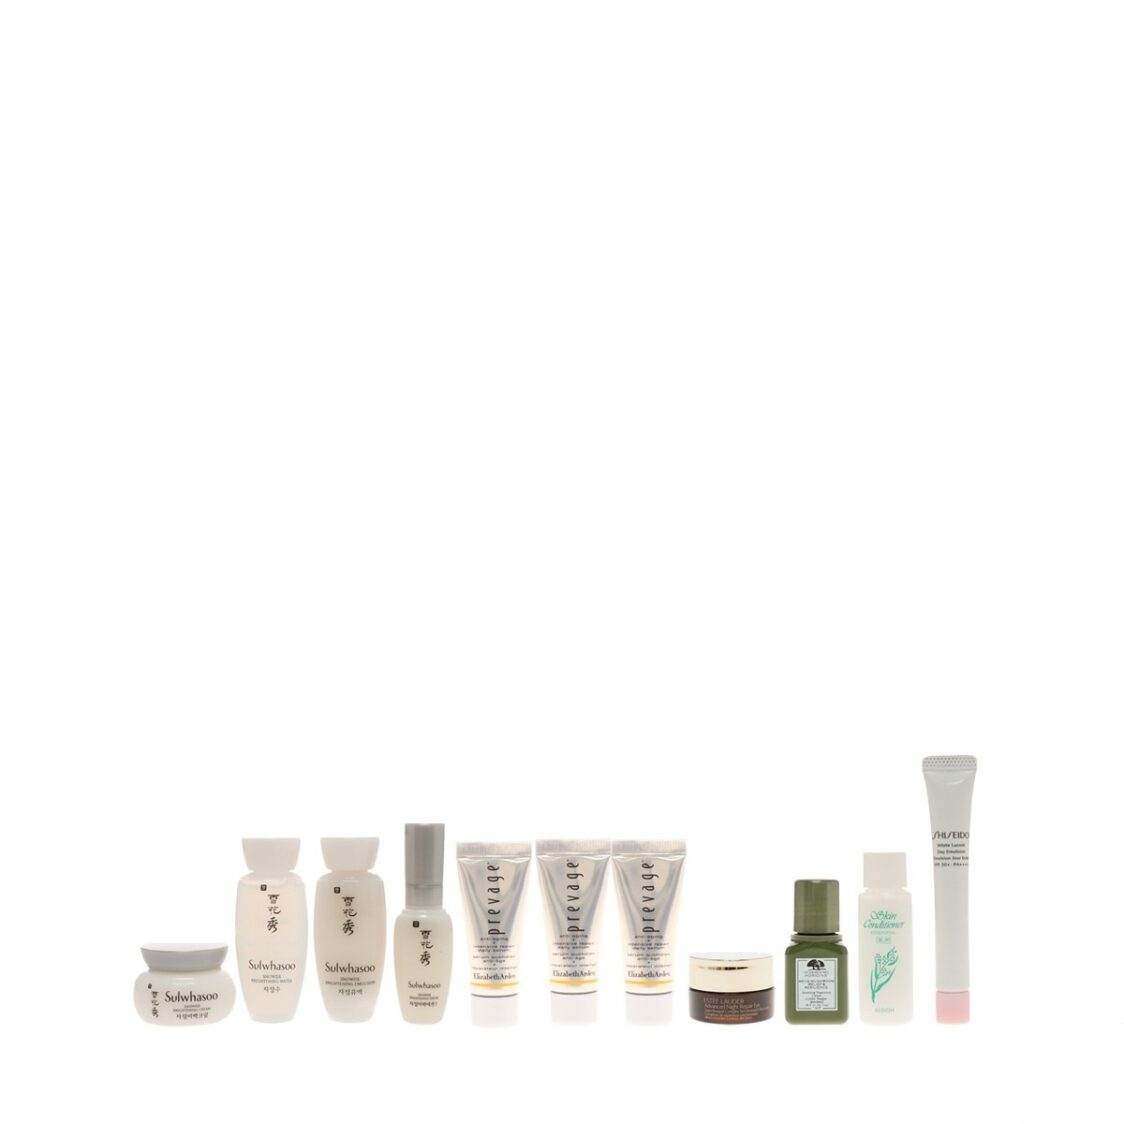 All About Skincare Beauty Set worth 152